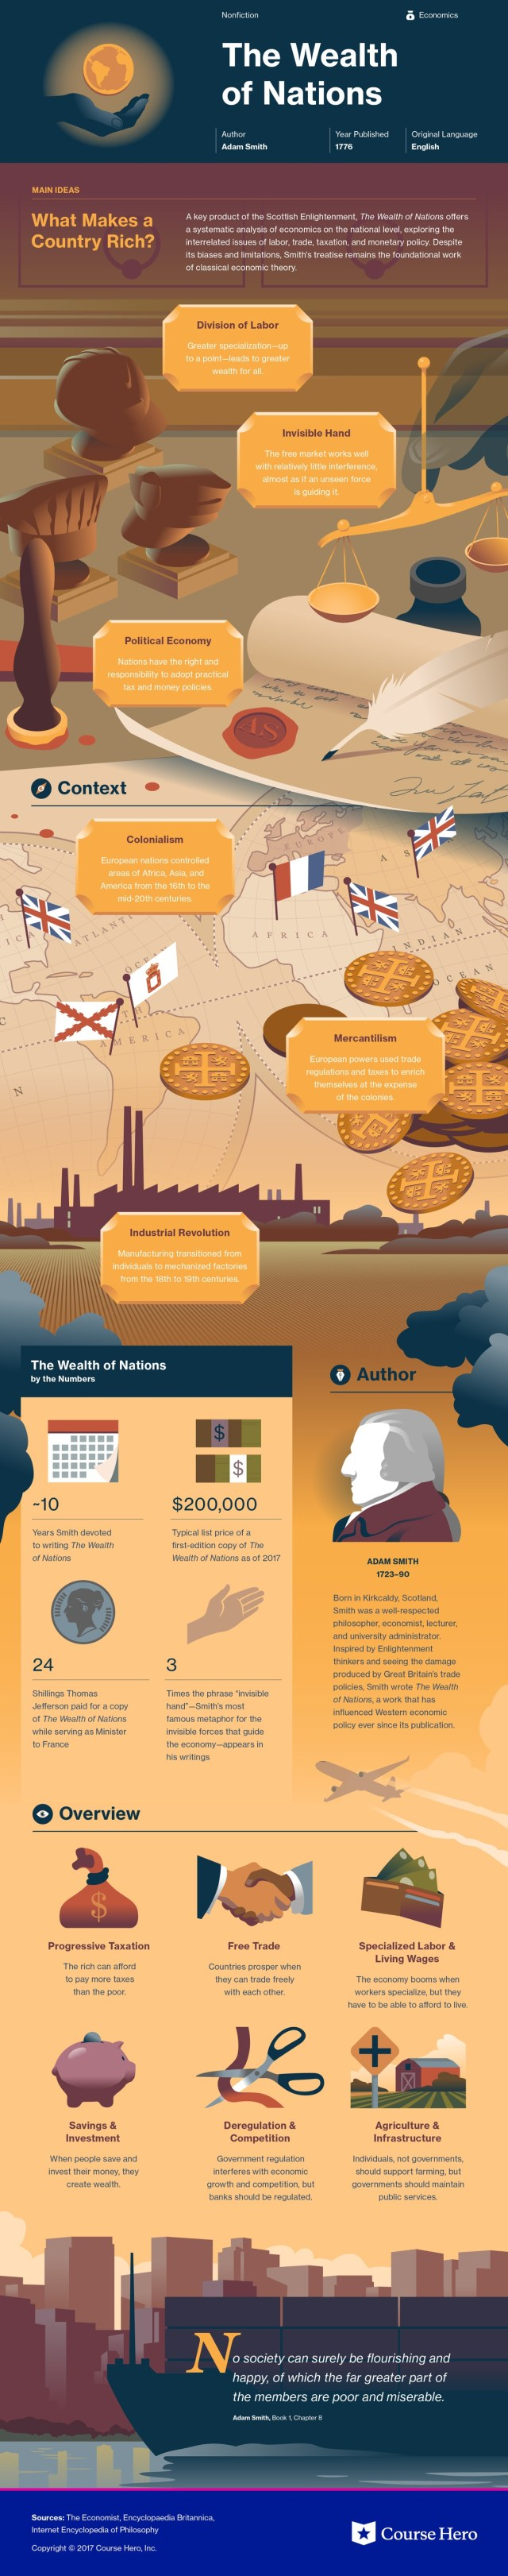 Wealth of Nations Infographic